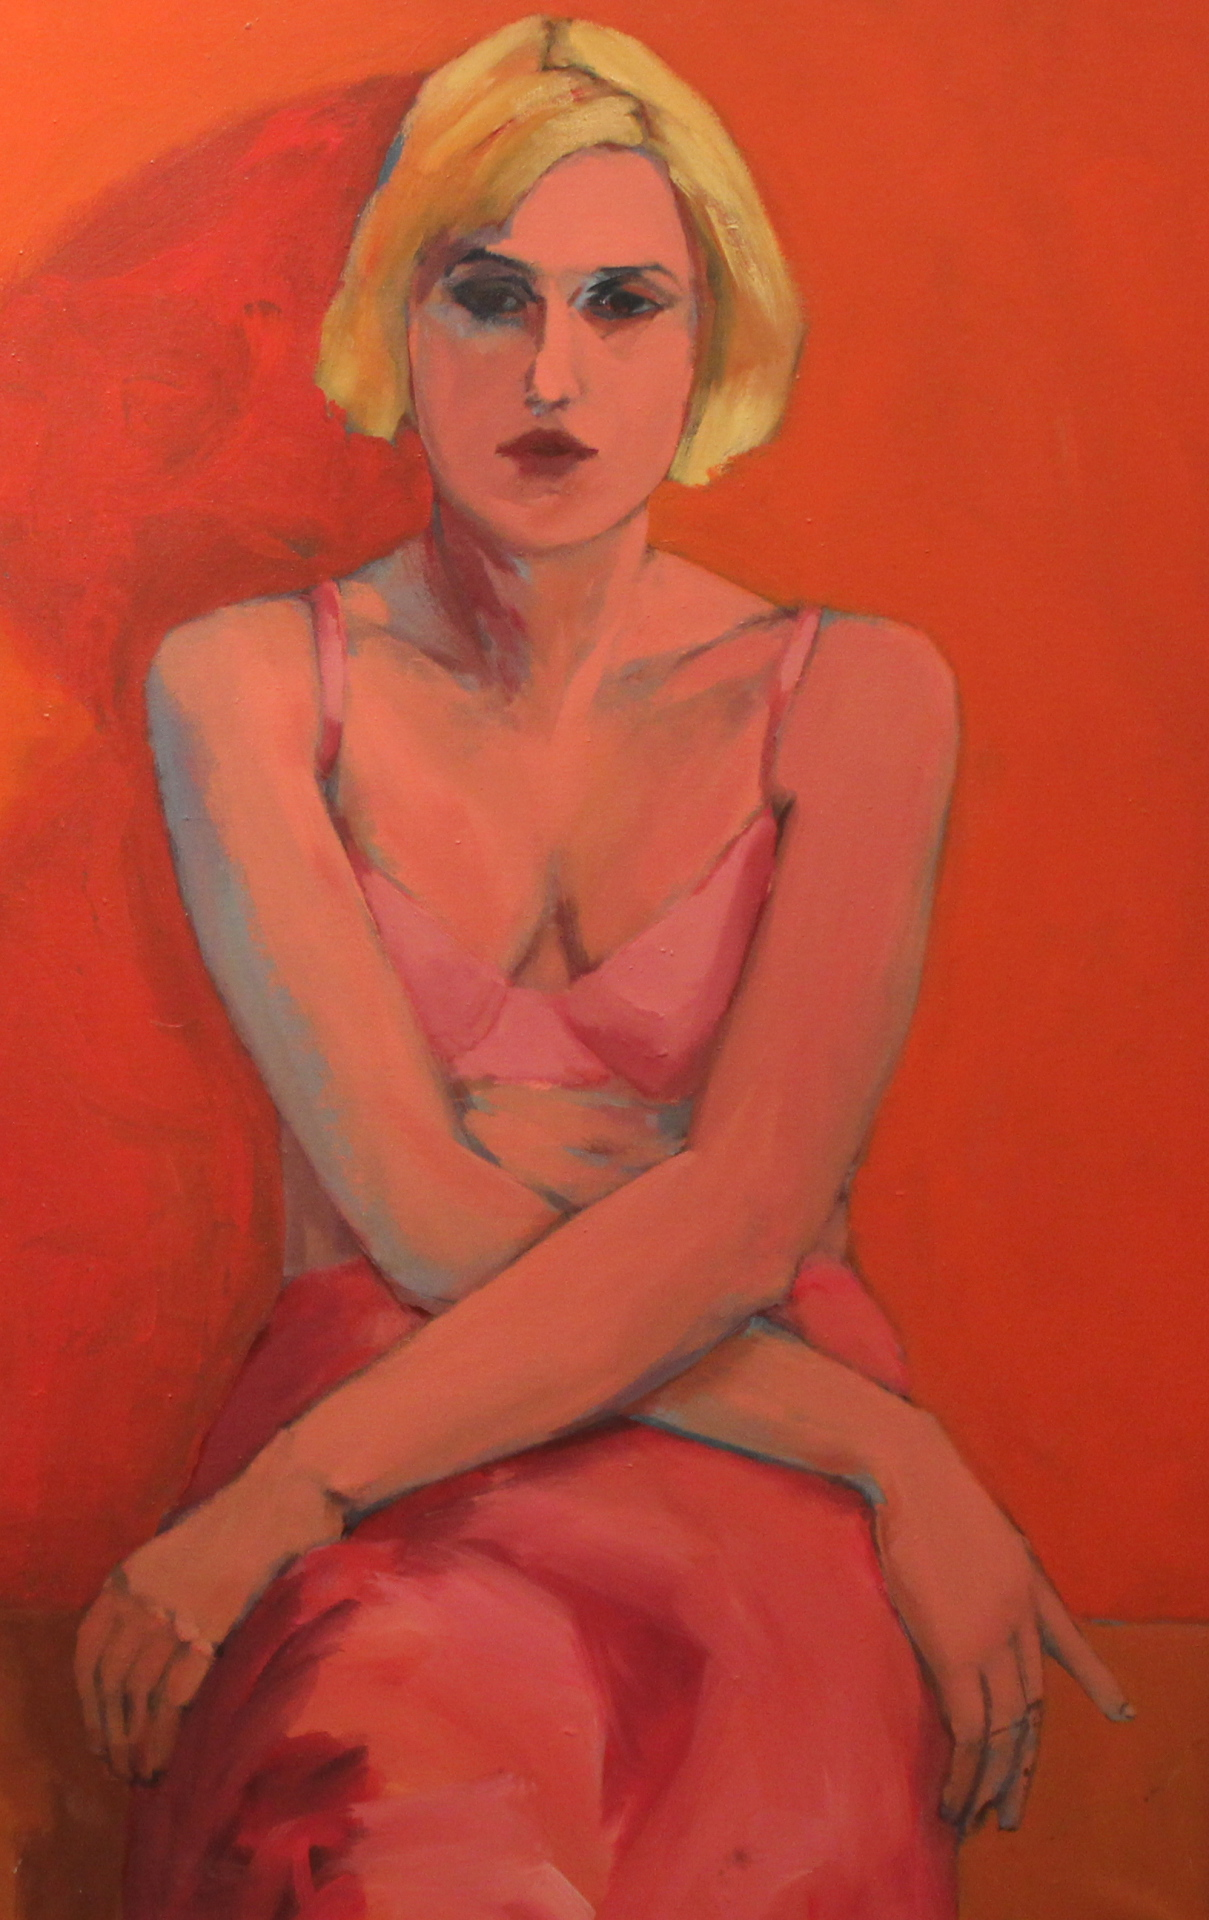 REBECCA #1 - 38X26 - MM ON PANEL - 1992